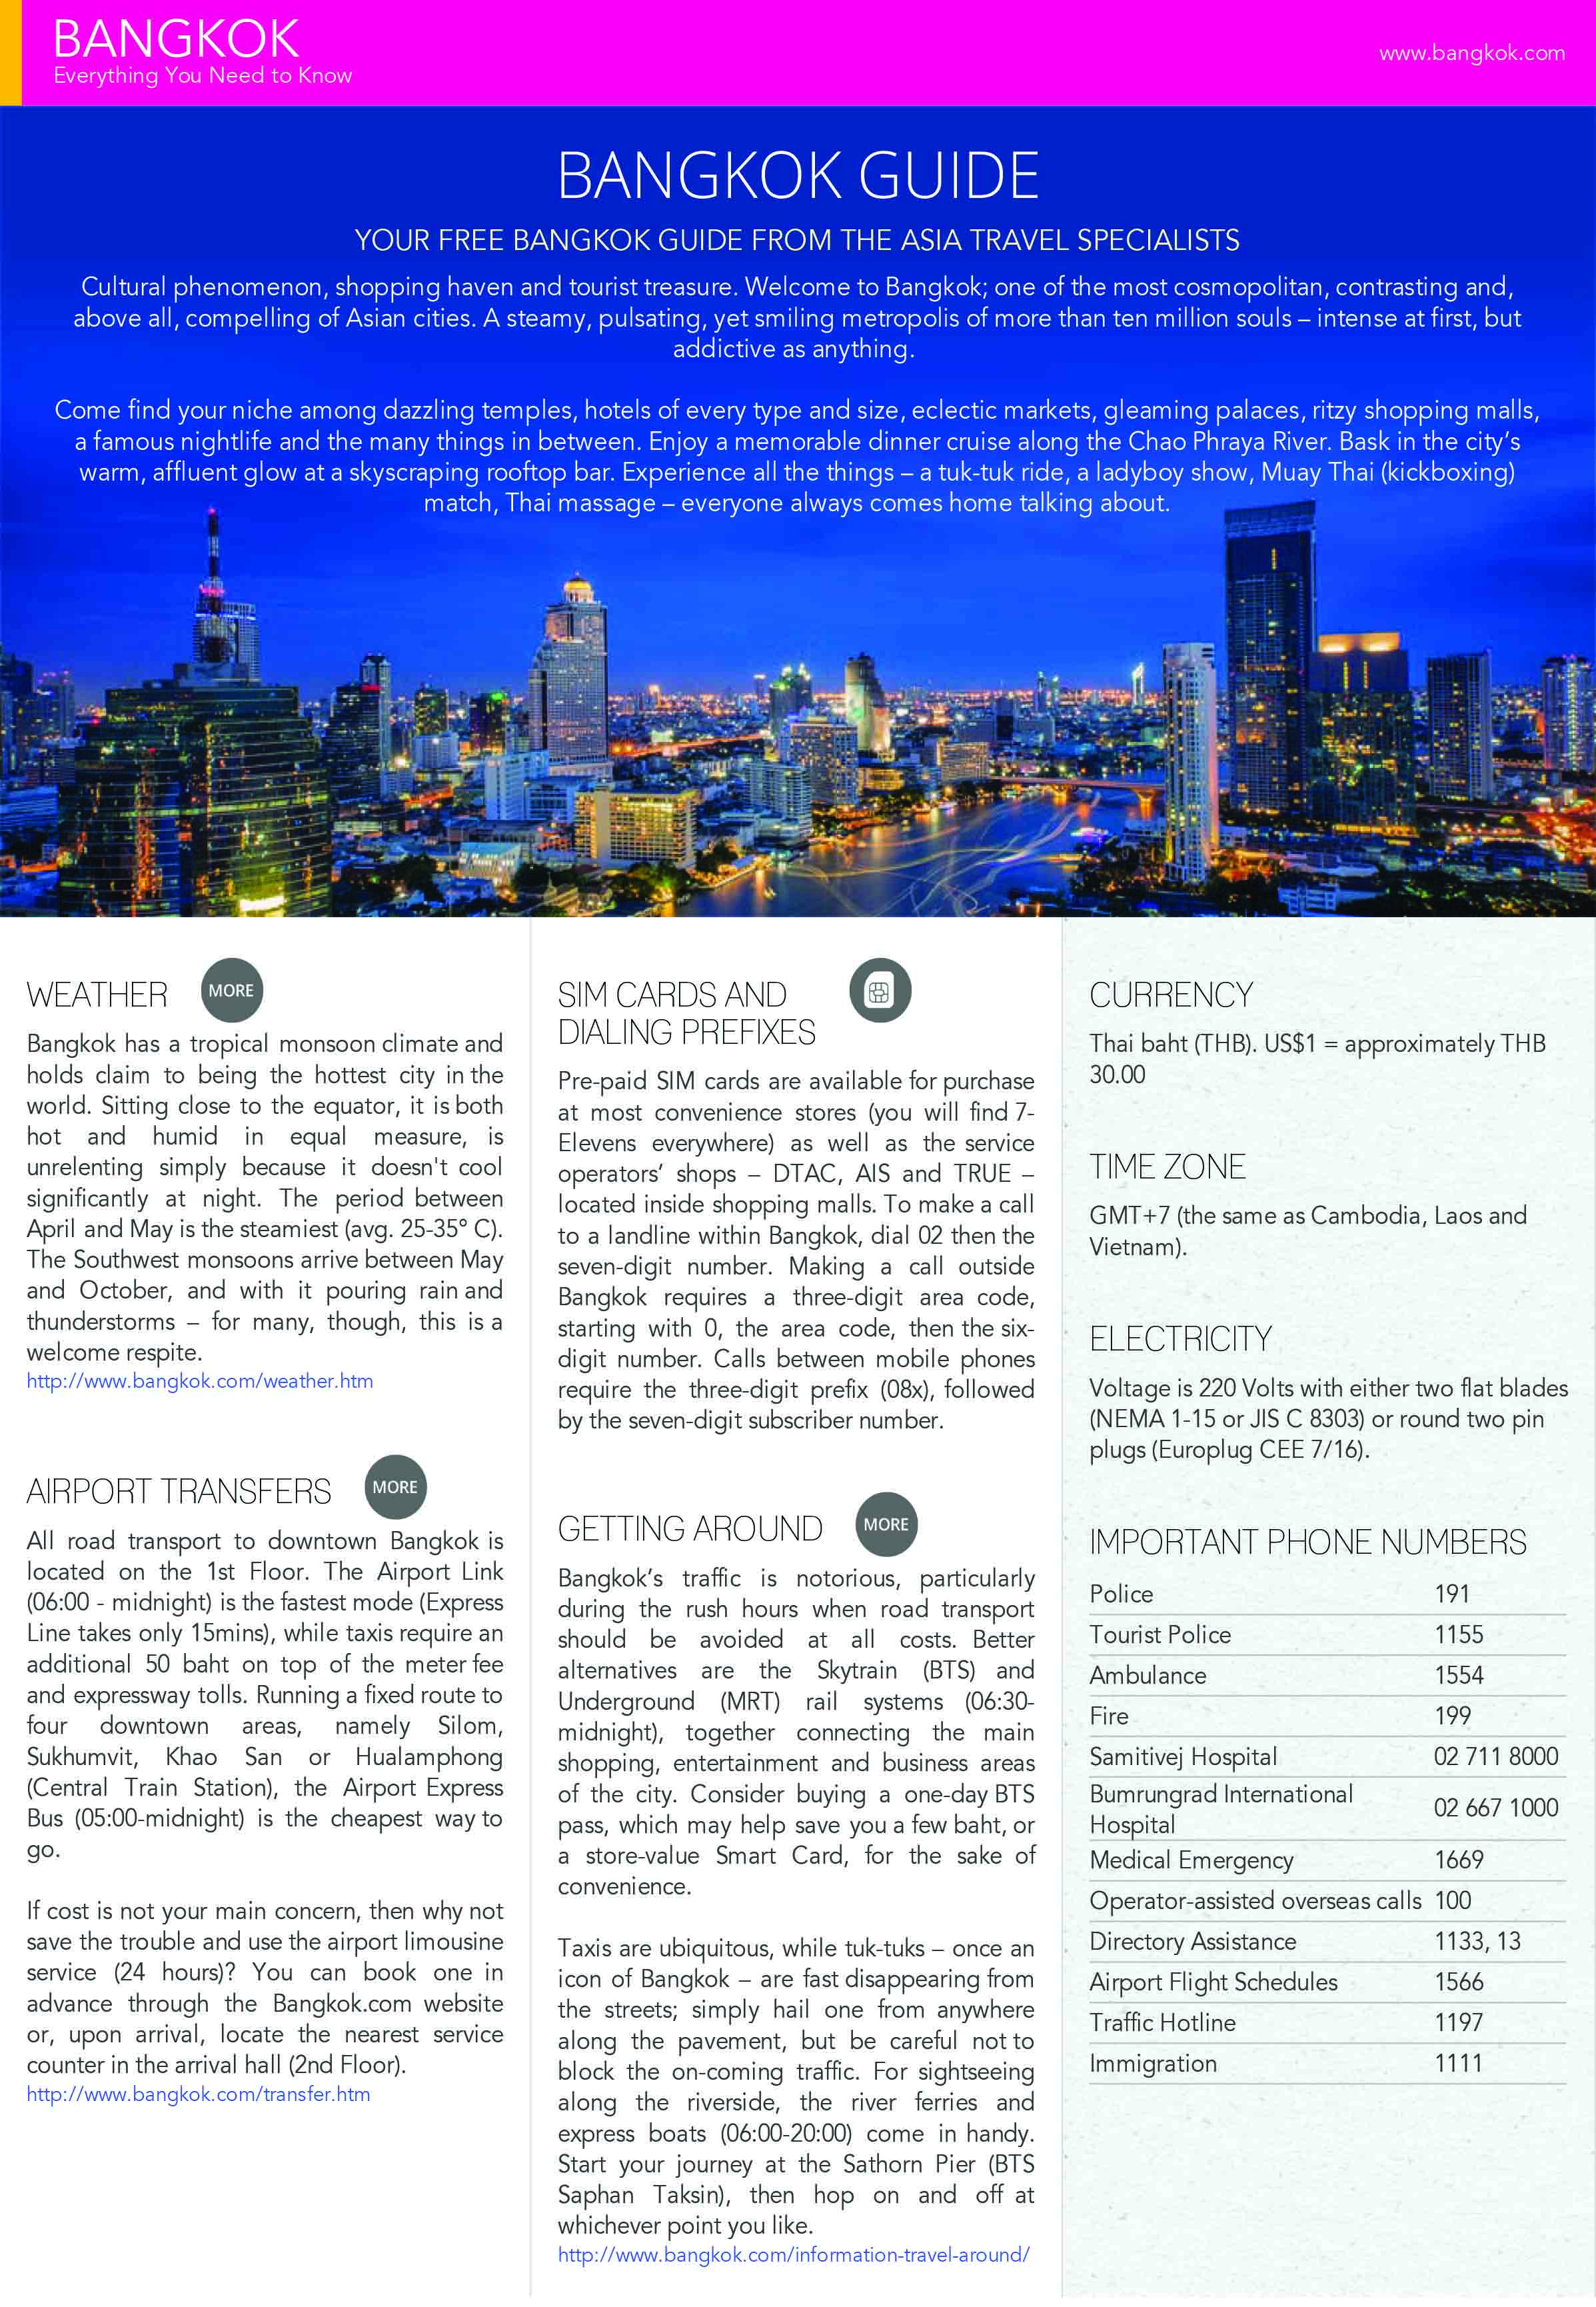 Tourism Bangkok Guide